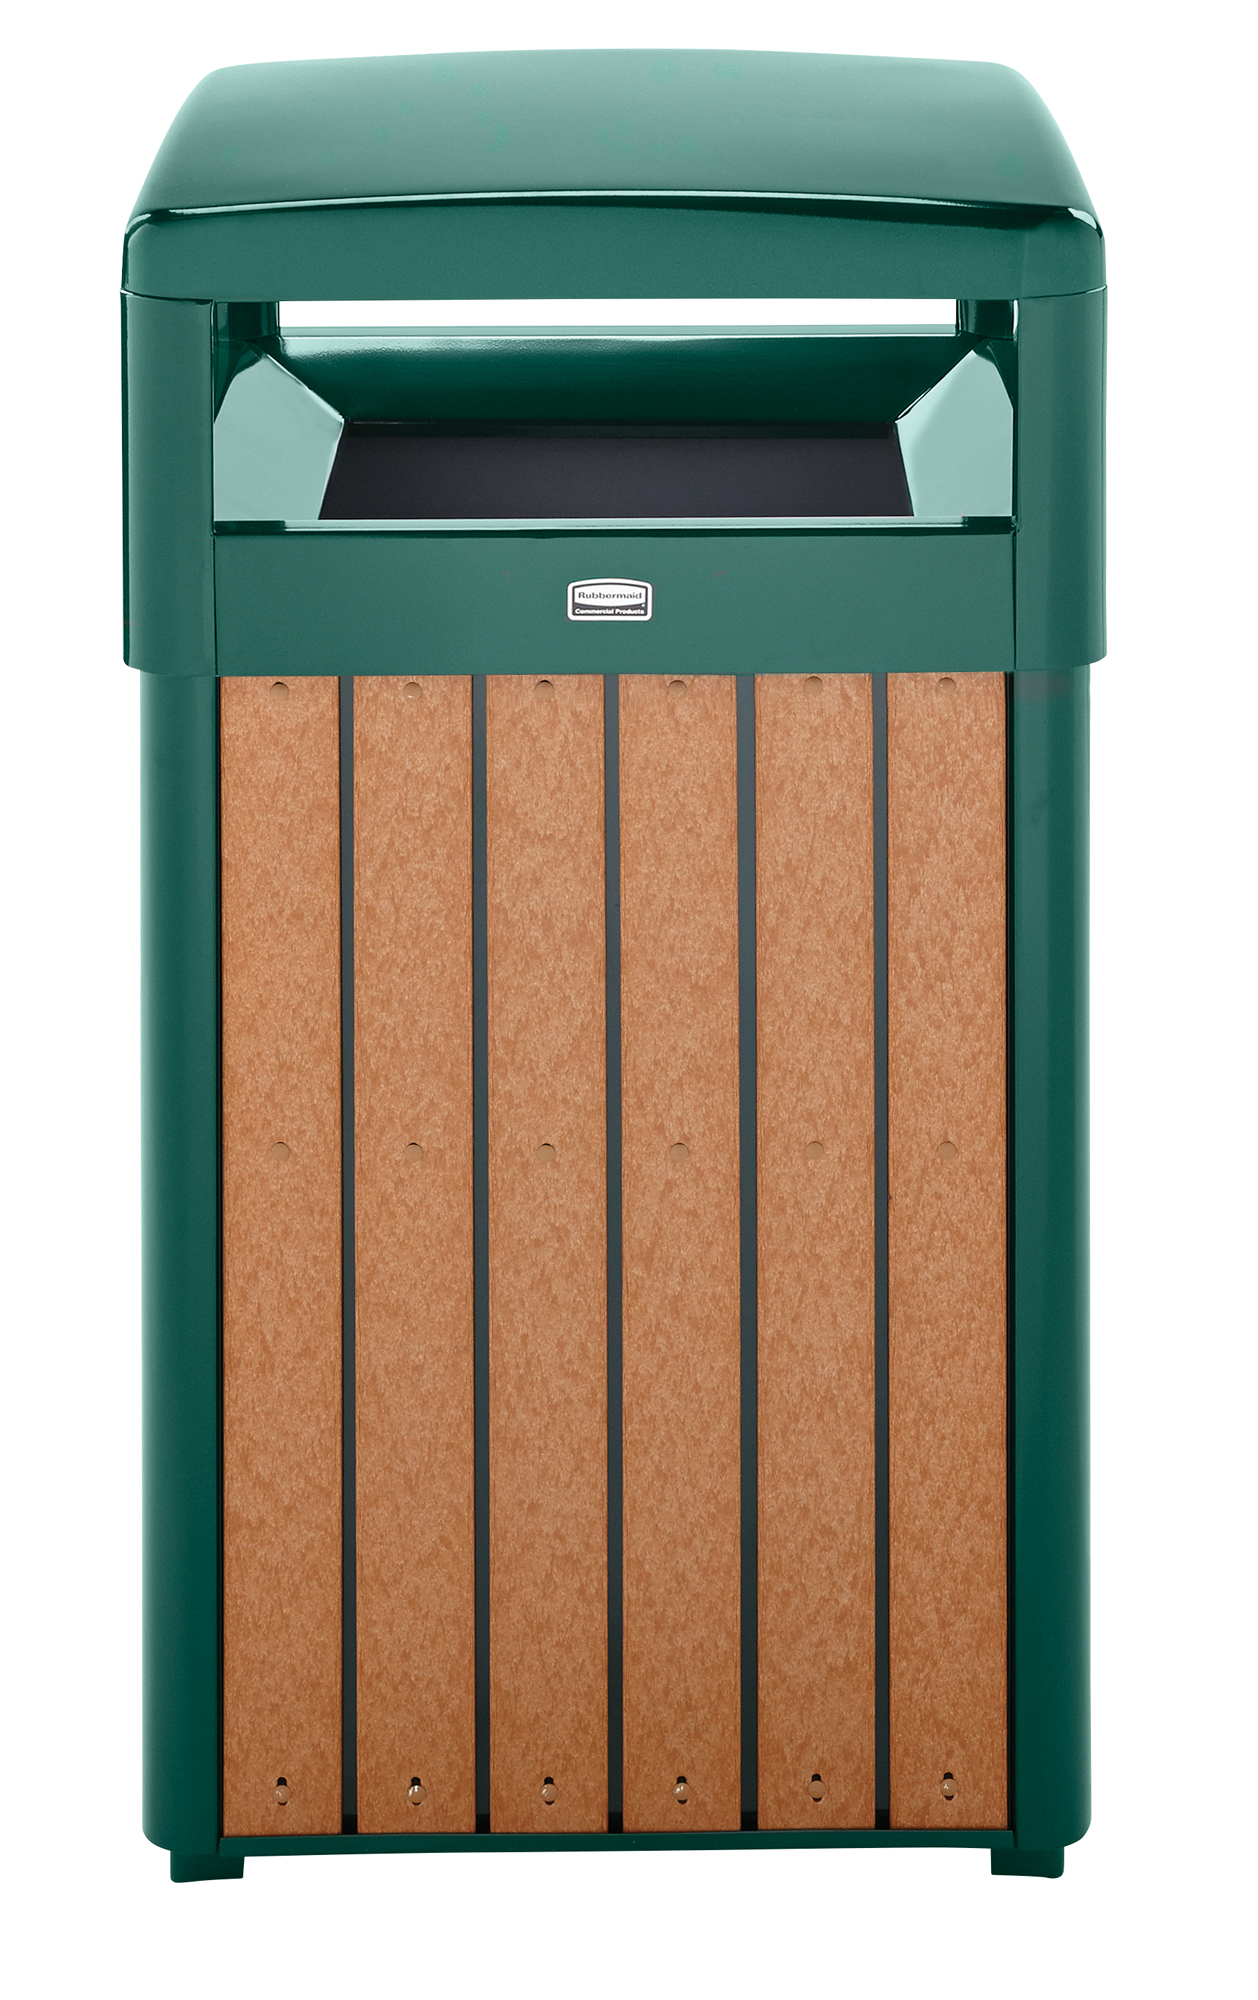 Regent Series Recycled Plastic Slat Trash Receptacle with Dome Top